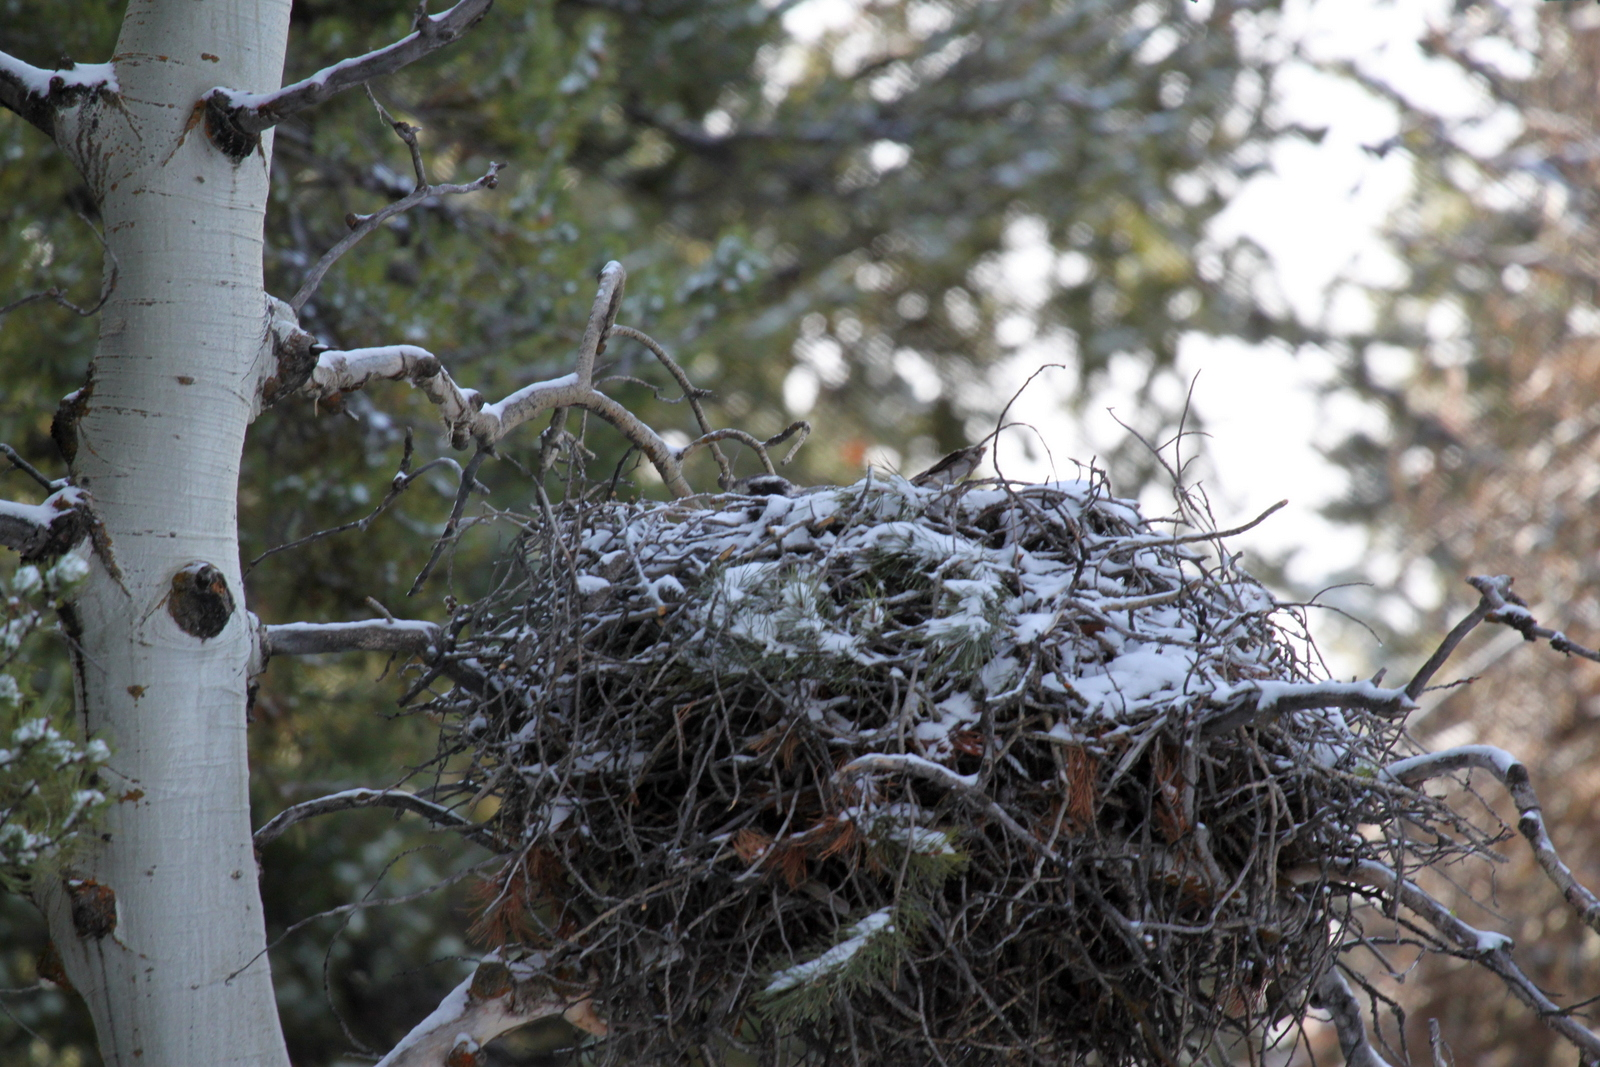 a stick nest covered in snow. A female goshawk's head and tail are barely visible over the rim of the nest